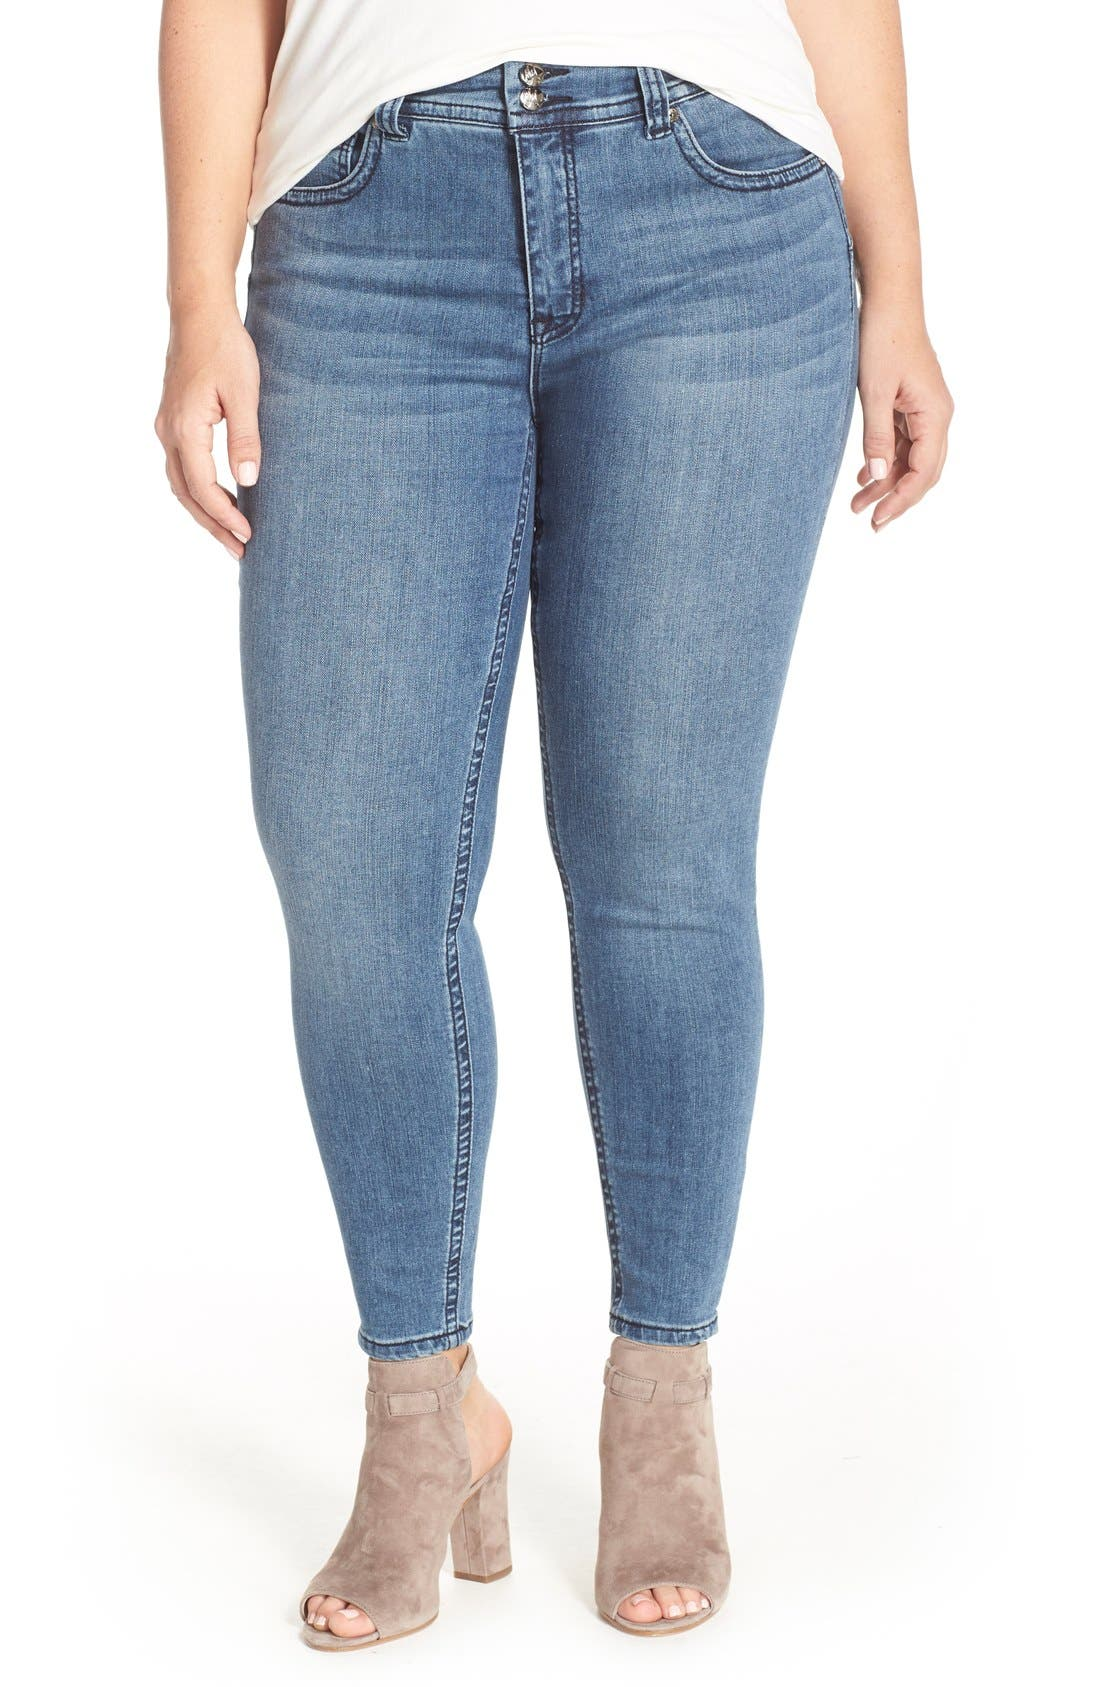 MELISSA MCCARTHY SEVEN7 High Waist Stretch Pencil Jeans